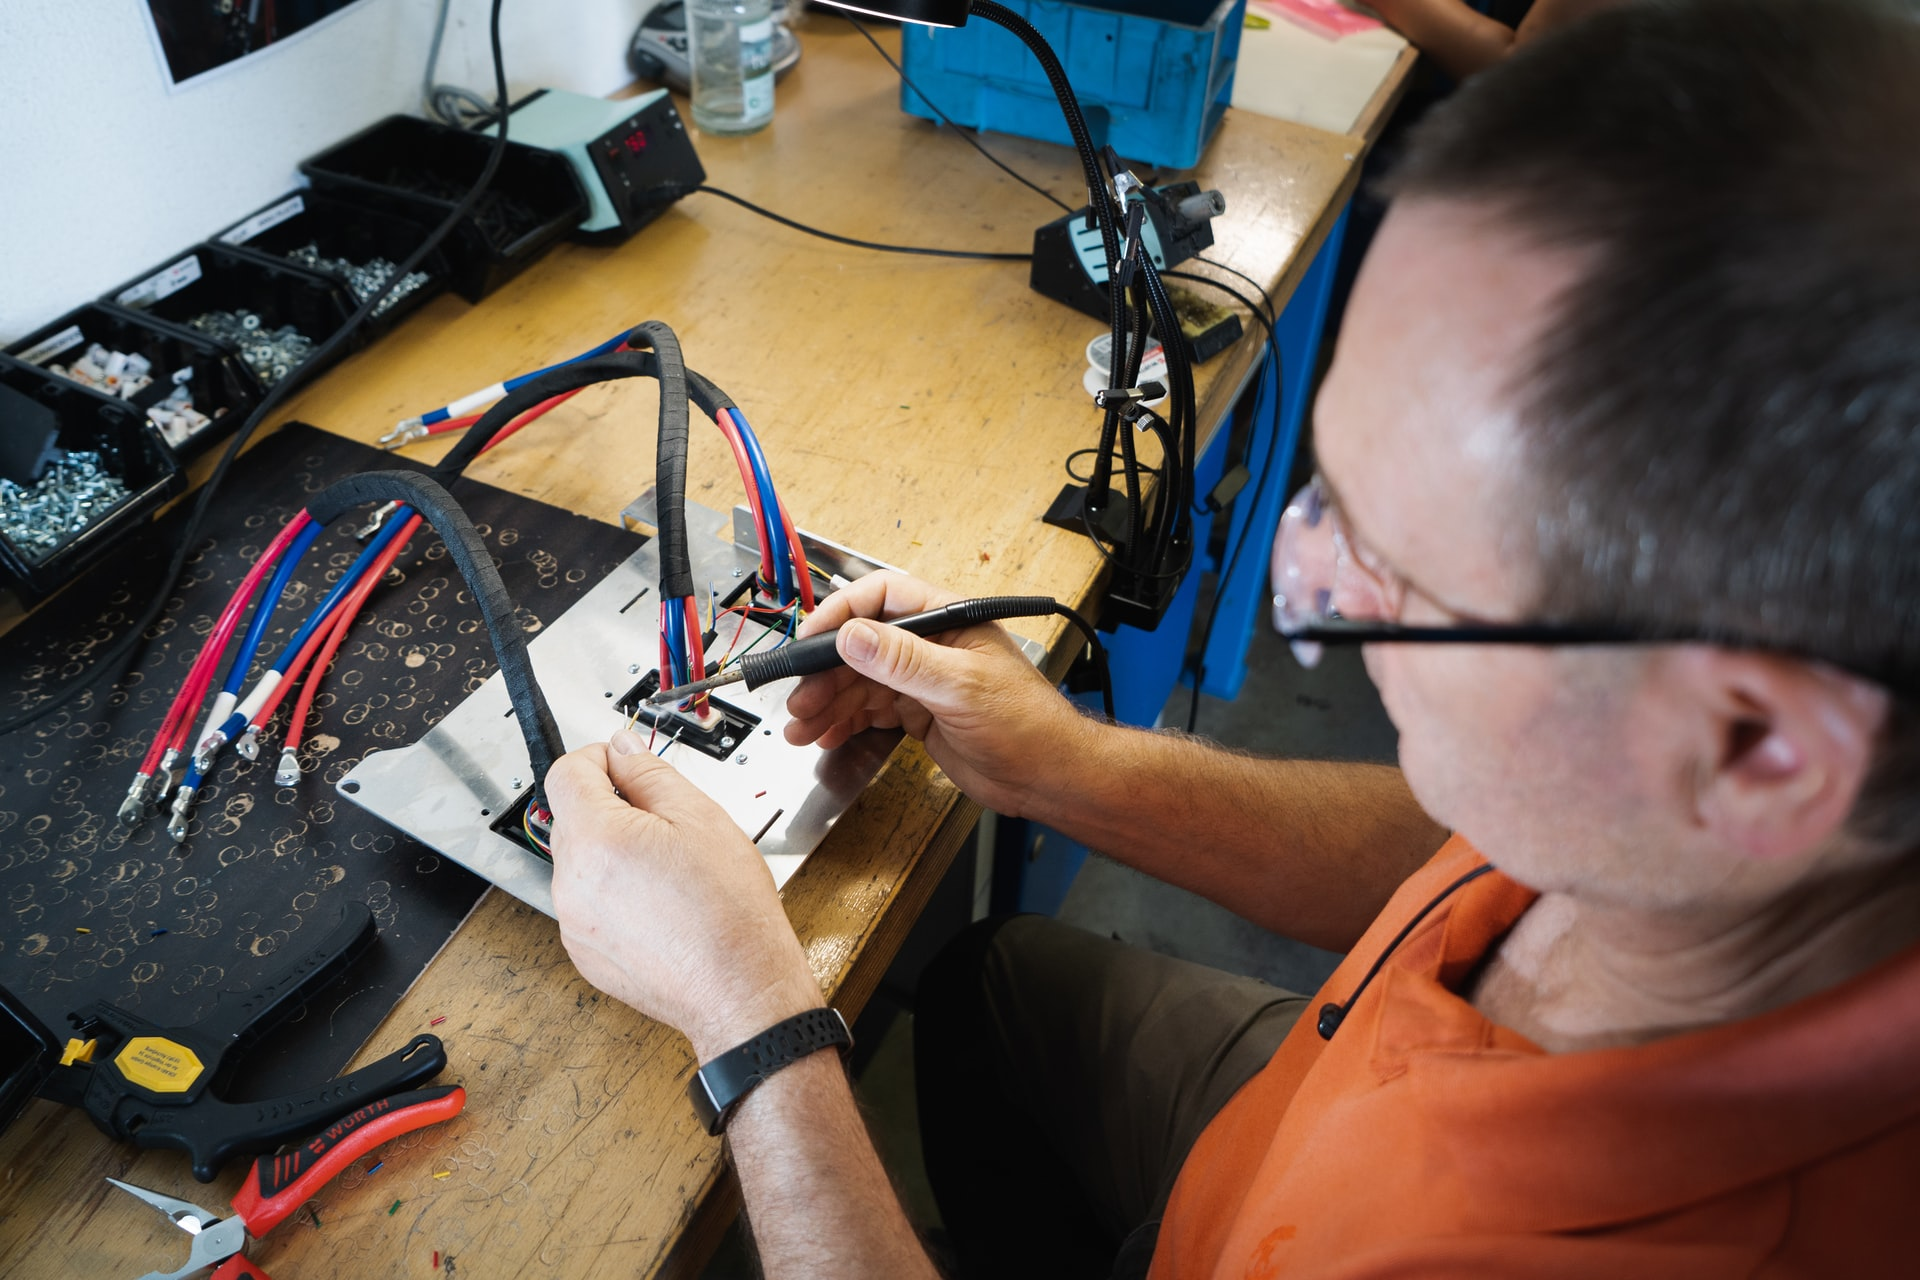 A Useful Guide To Help You Understand Everything About Designing And Manufacturing A Wiring Harness